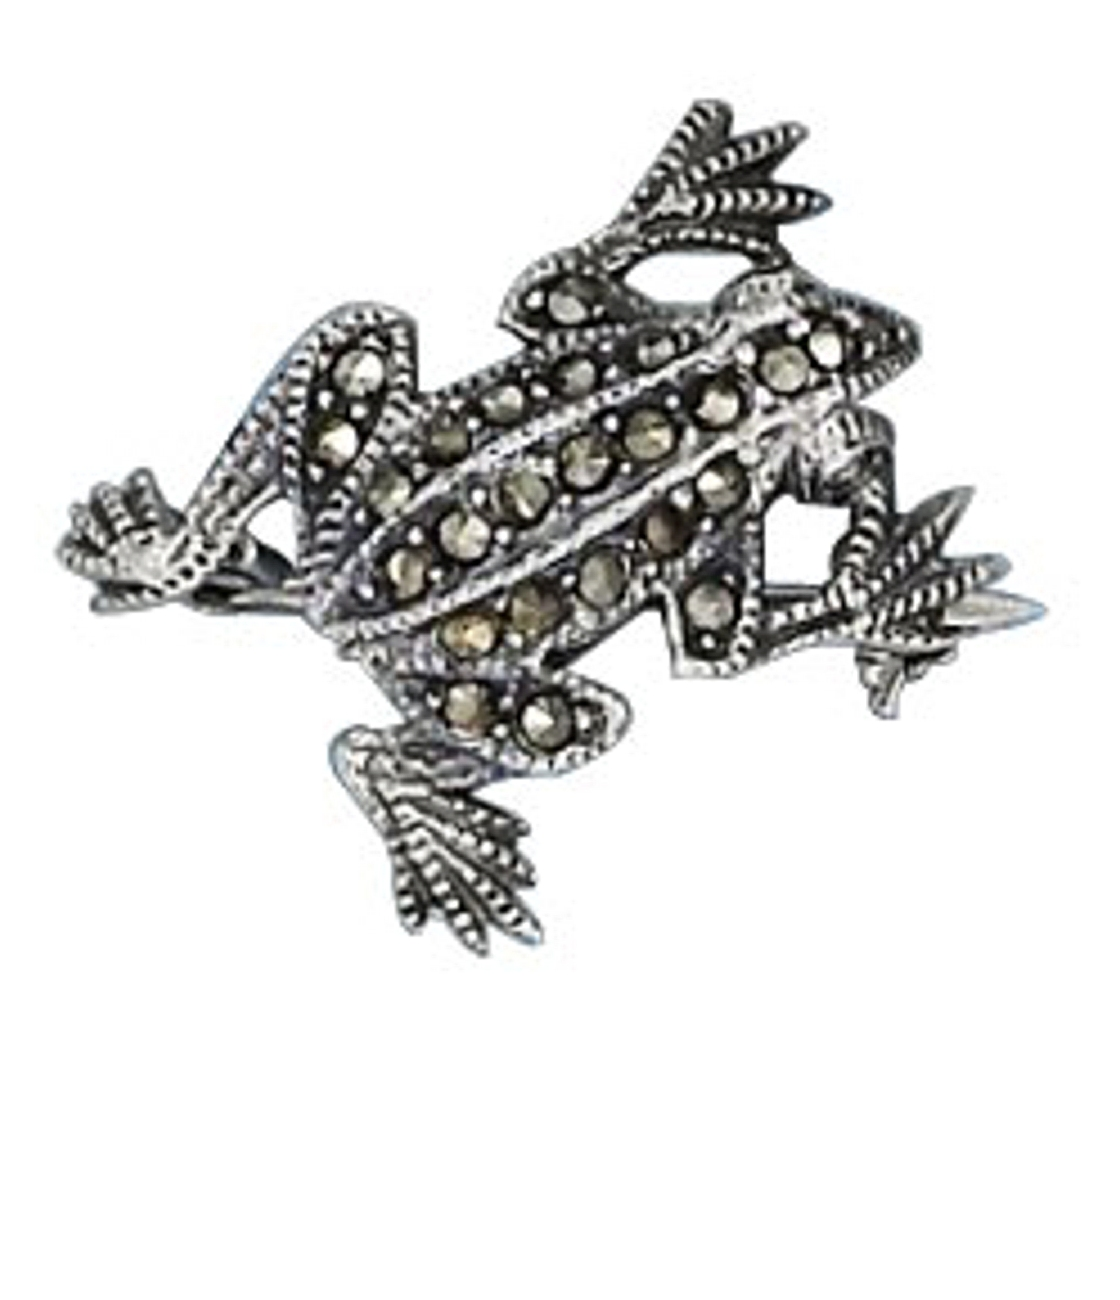 Small Marcasite Toad Frog Pin Brooch